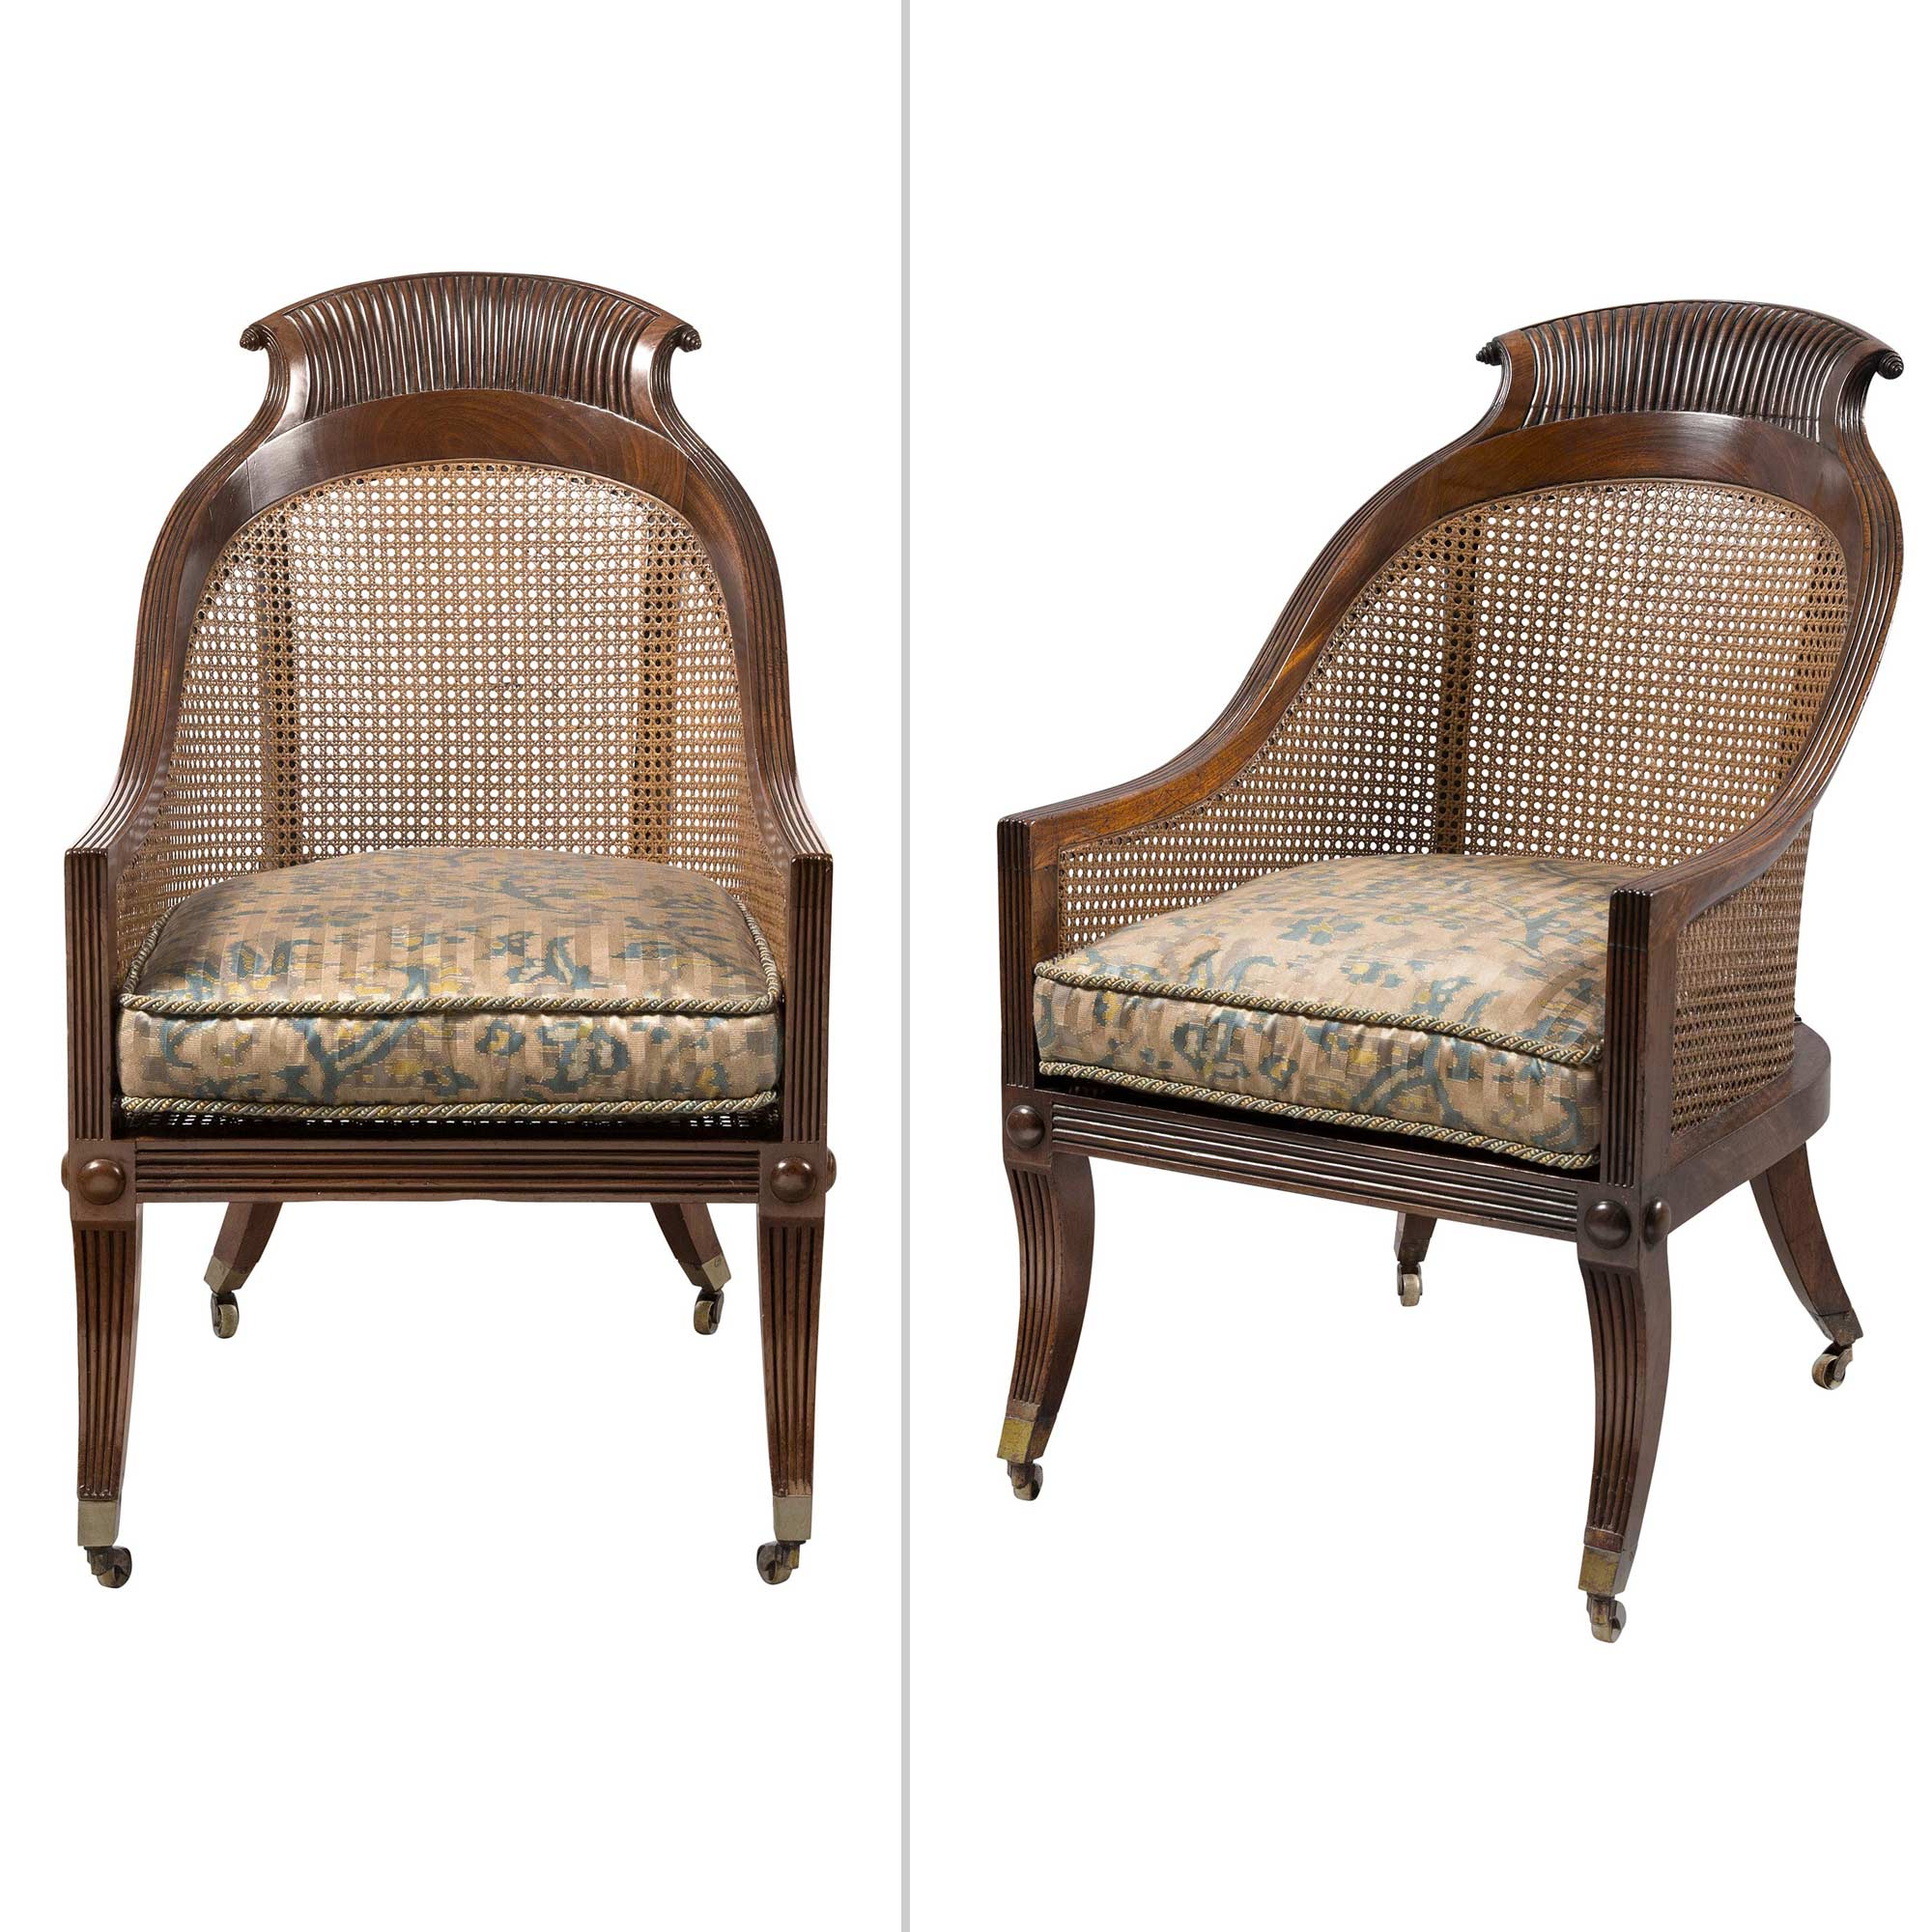 Lot image - Pair of Regency Mahogany Caned Bergères in the manner of Gillows